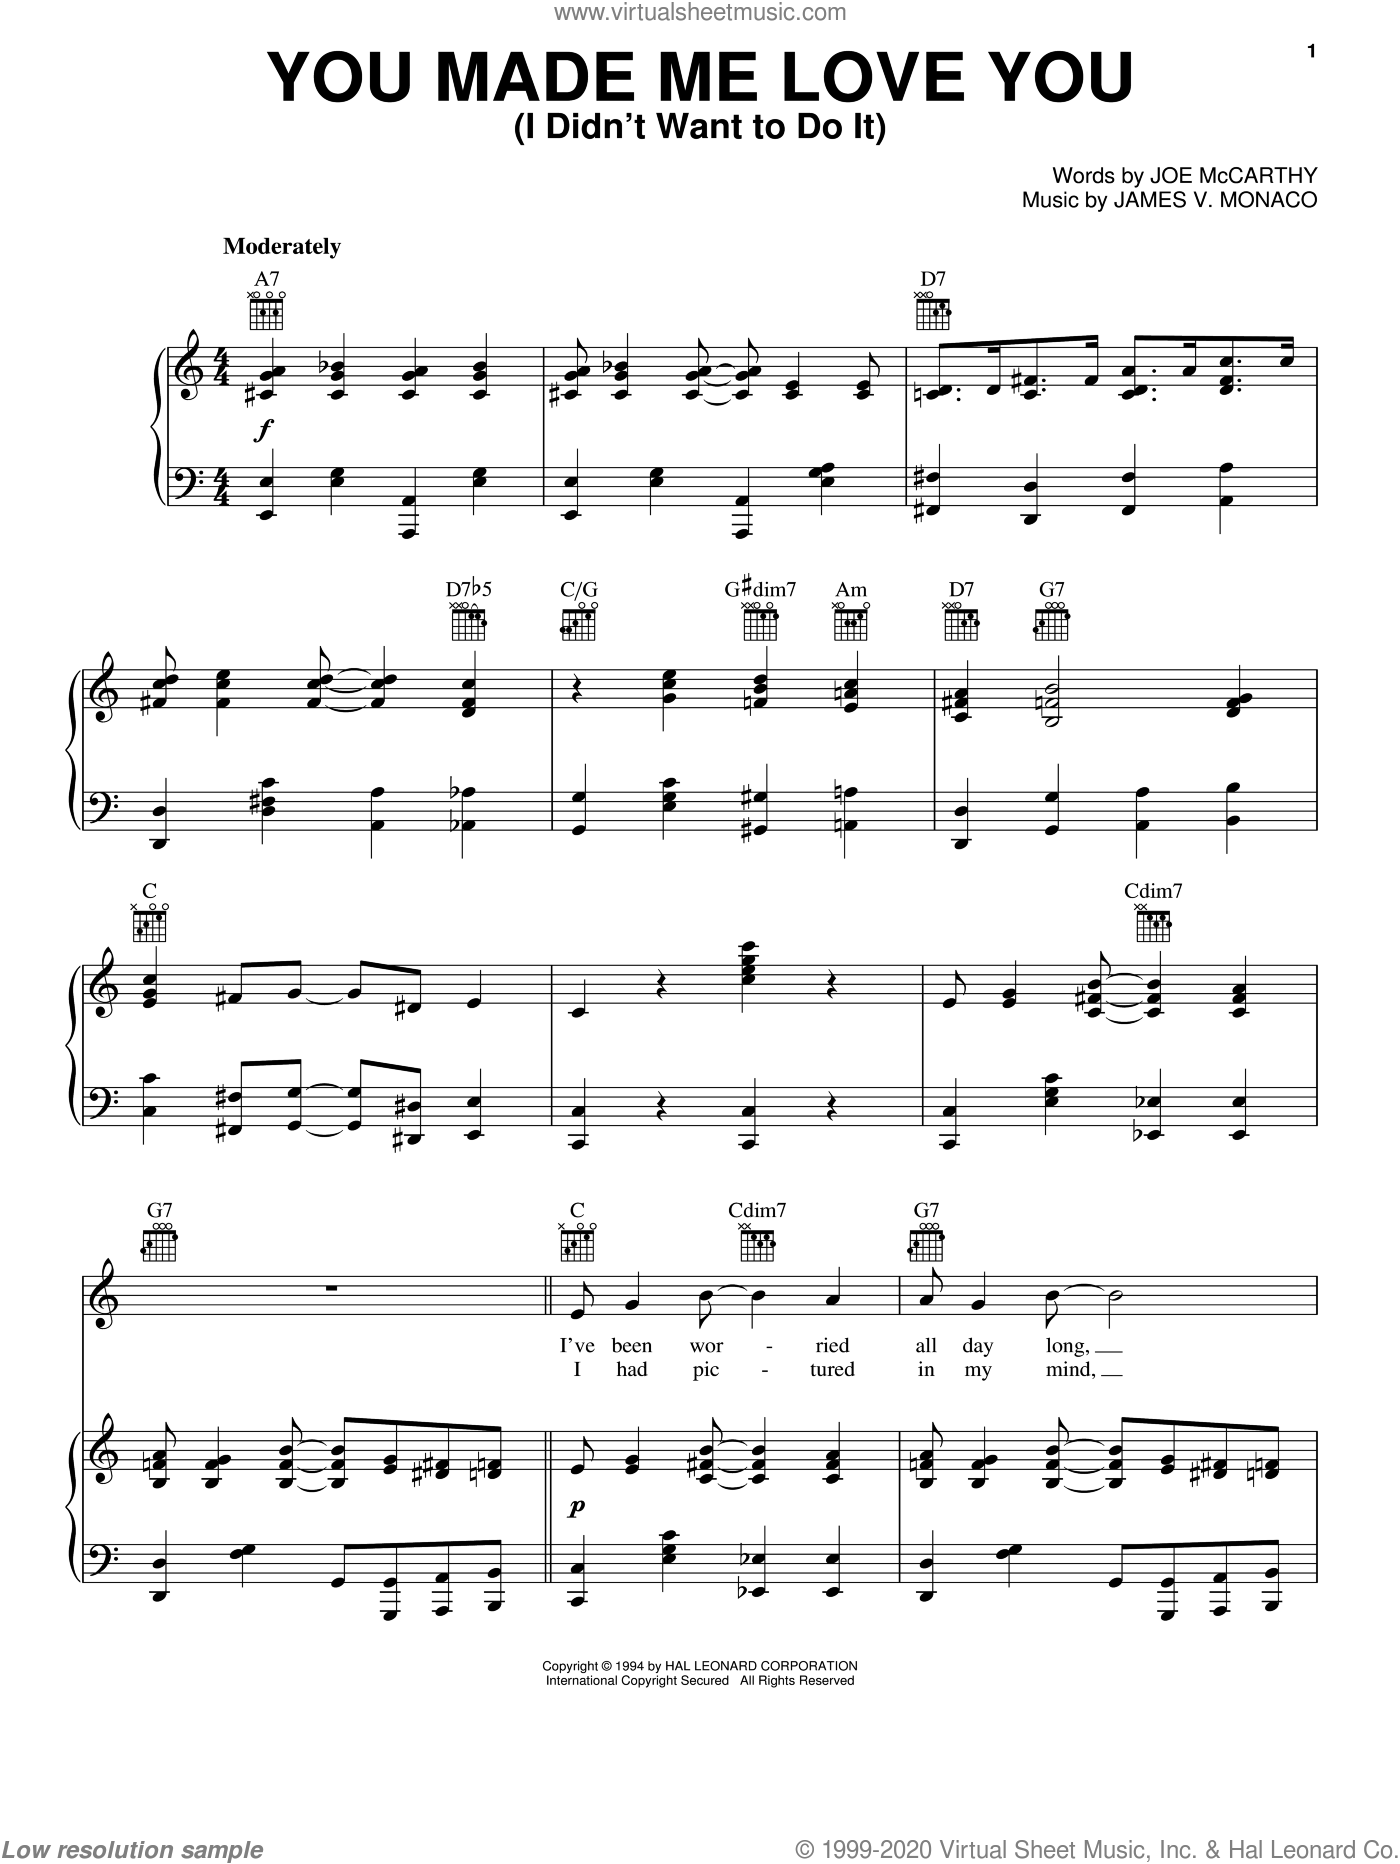 You Made Me Love You (I Didn't Want To Do It) sheet music for voice, piano or guitar by Joe McCarthy and James Monaco, intermediate skill level